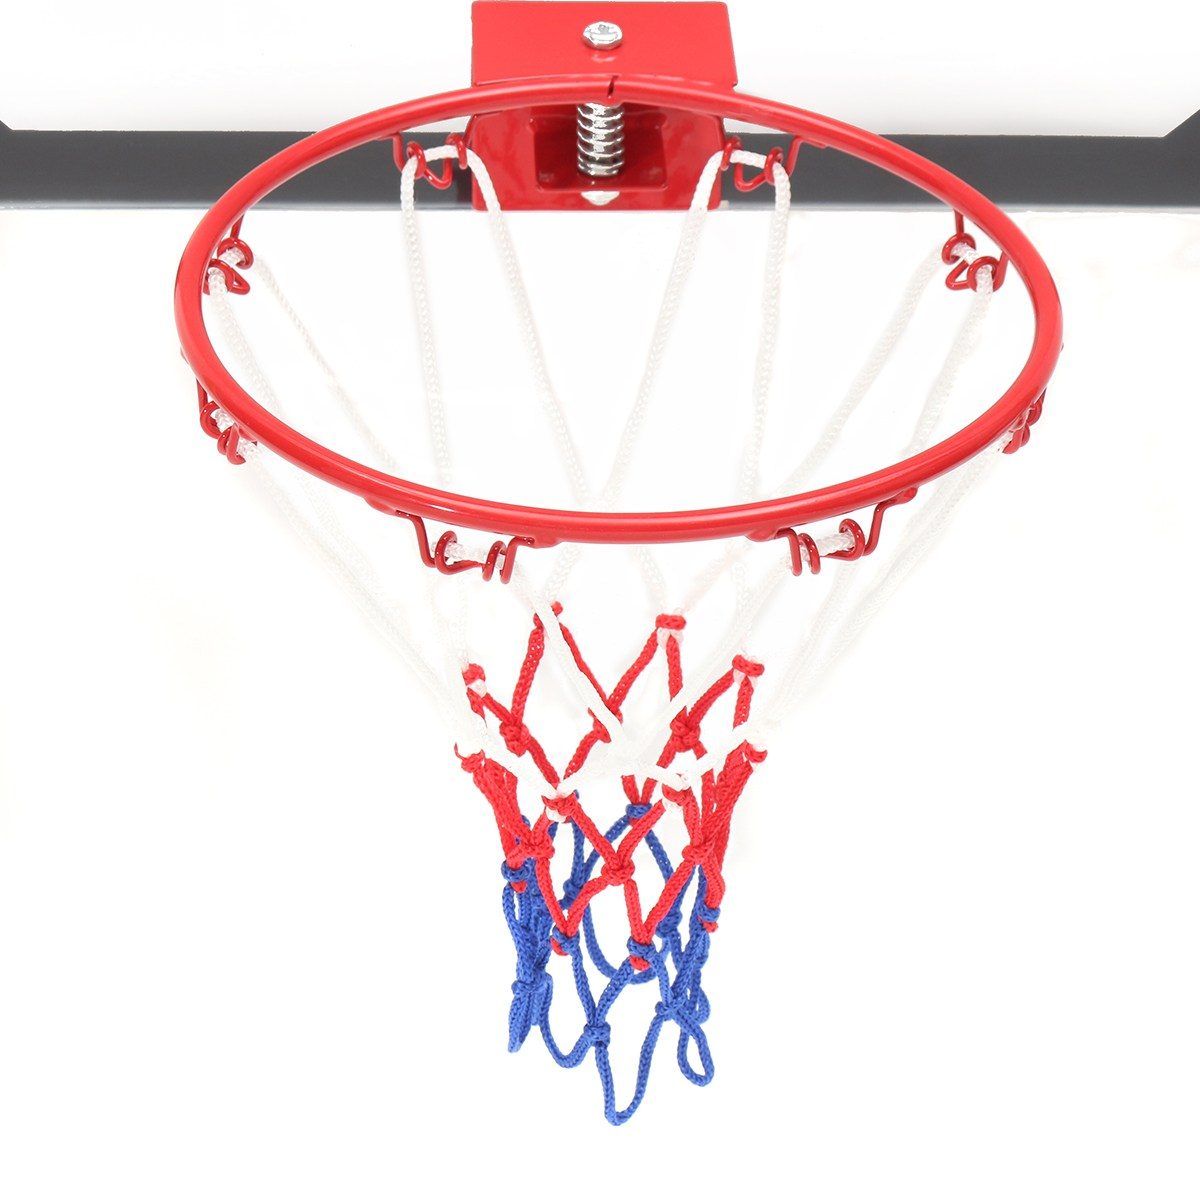 Indoor home train Adjustable Hanging Basketball Hoop Mini Basketball Board For Game Children Kids Game with ball and air pump fast free ship for gameduino for arduino game vga game development board fpga with serial port verilog code